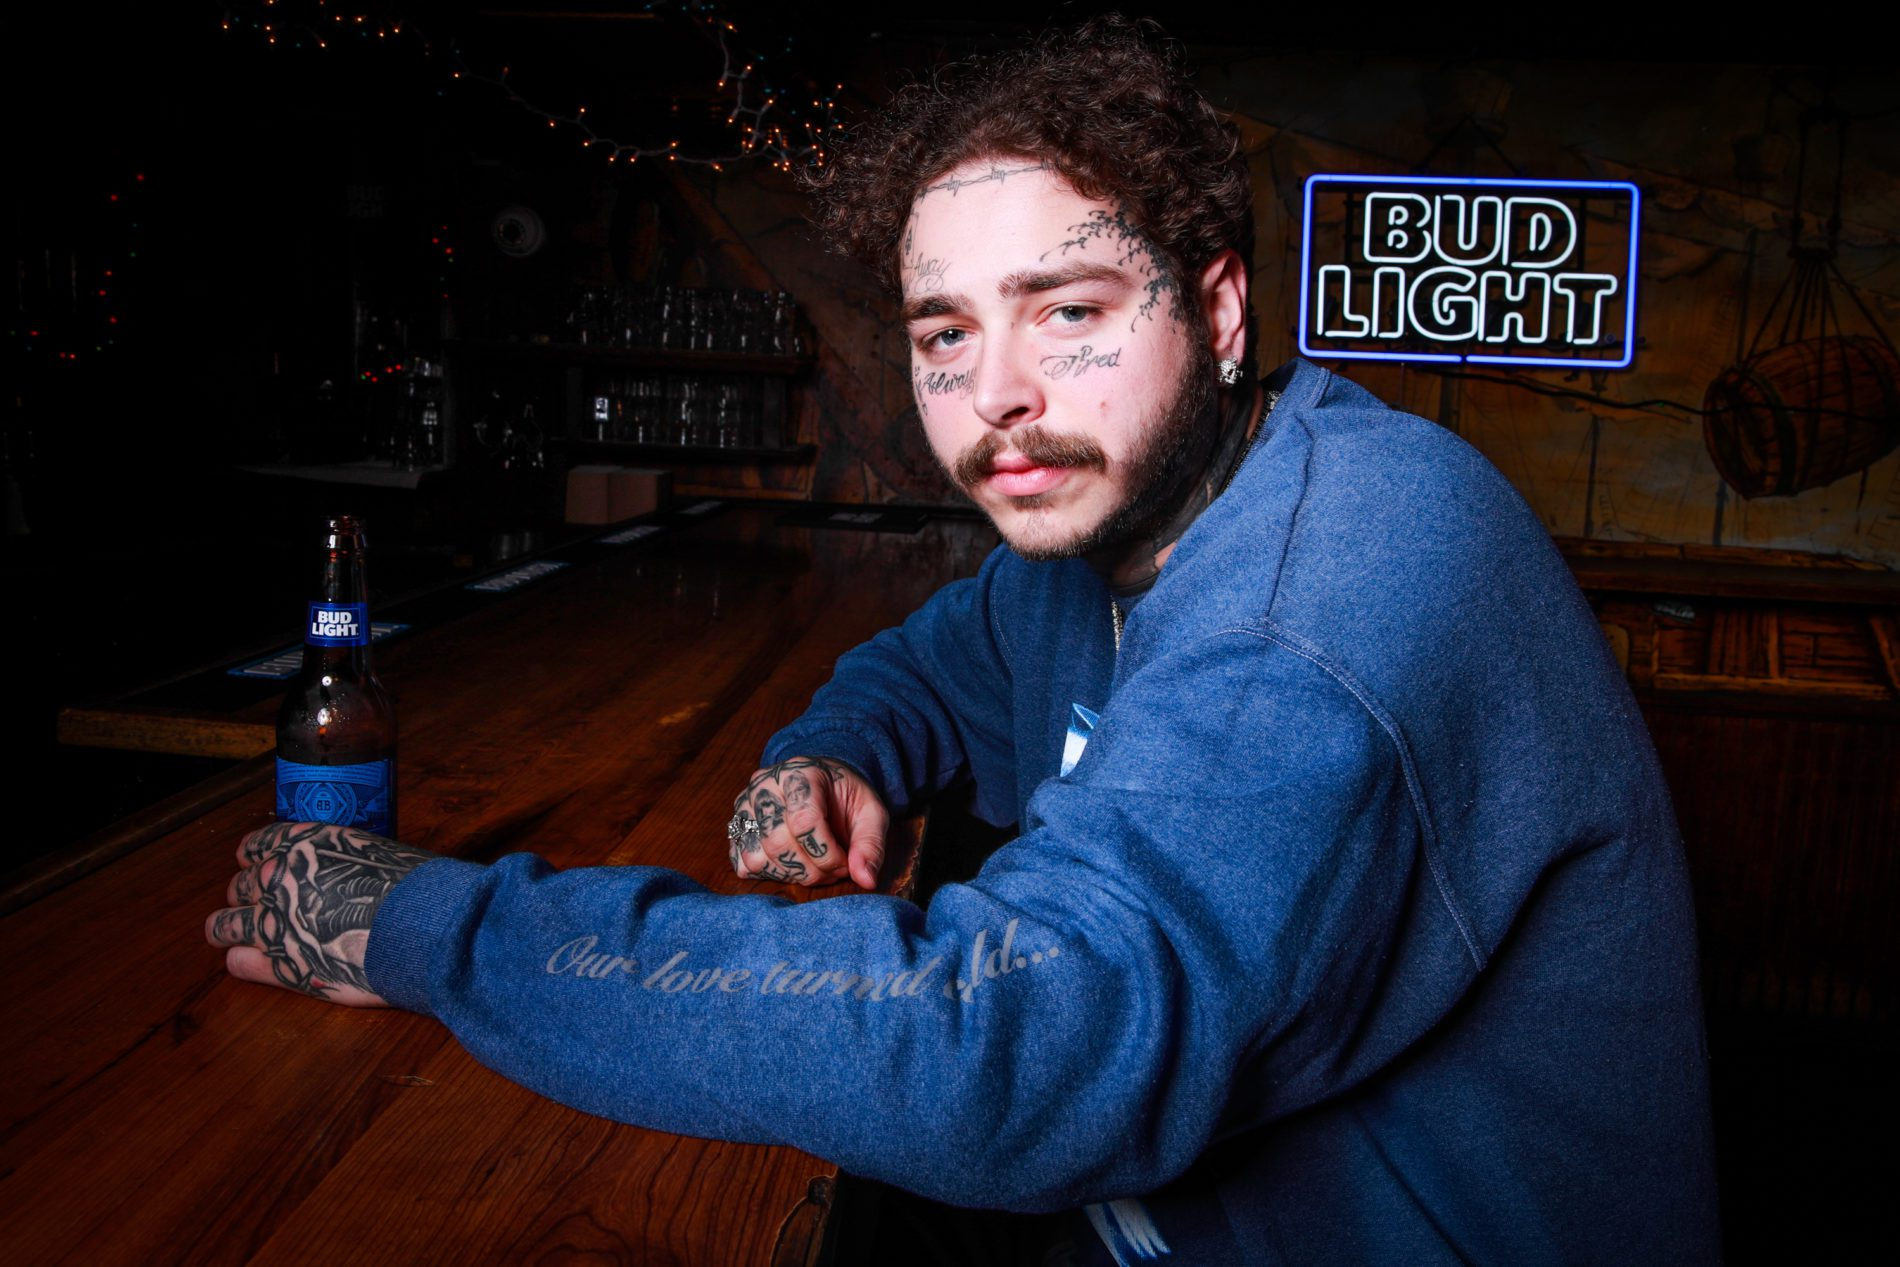 Post Malone Attended his Bud Light NYC Pop-Up Shop | The